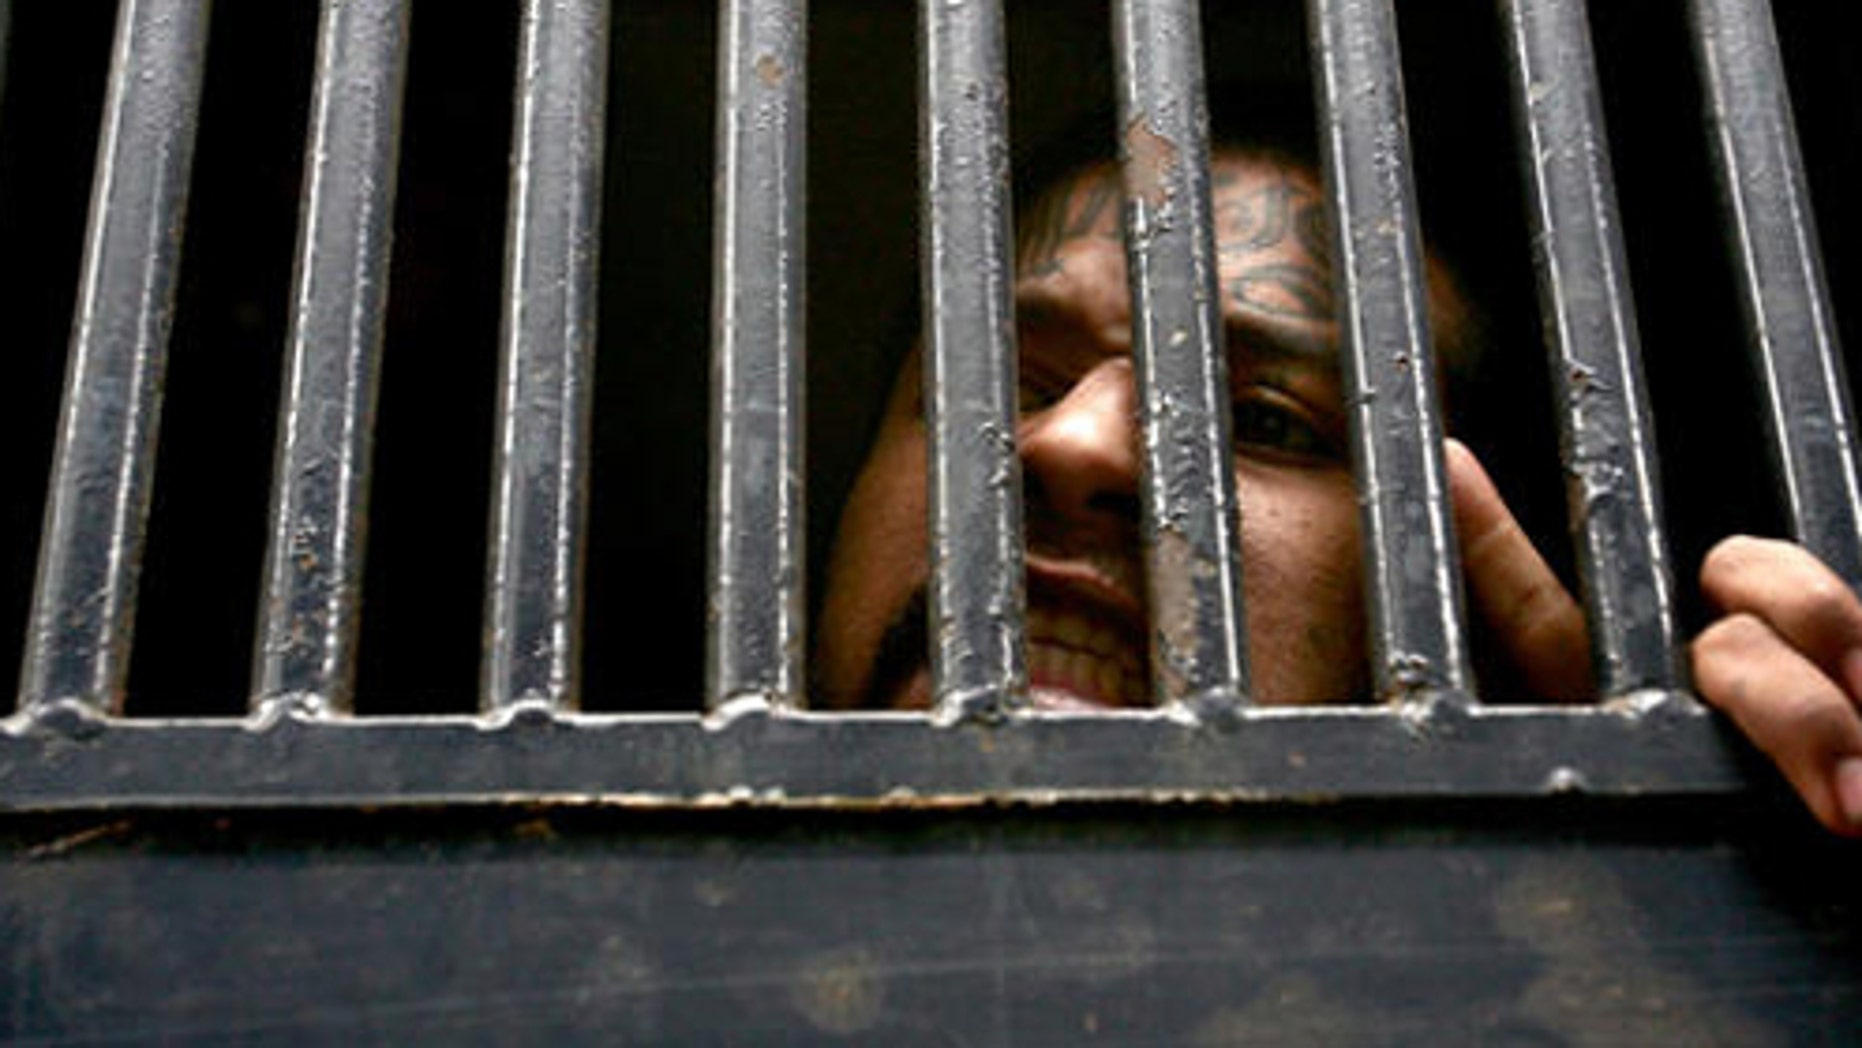 ** ALTERNATIVE CROP OF ABD106 ** A member of the 'Mara Salvatrucha' gang, reacts from  inside of a  prison bus as he is taken away to be separated from the rest of the prisoners after a riot in the Pavoncito penitentiary, in Fraijanes, Guatemala, Tuesday, March 27, 2007. The prisoners refused to coexist with another group of prisoners, allegedly participants of the murder of the four policemen accused of killing the Salvadoran congressmen last month. (AP Photo/Rodrigo Abd)